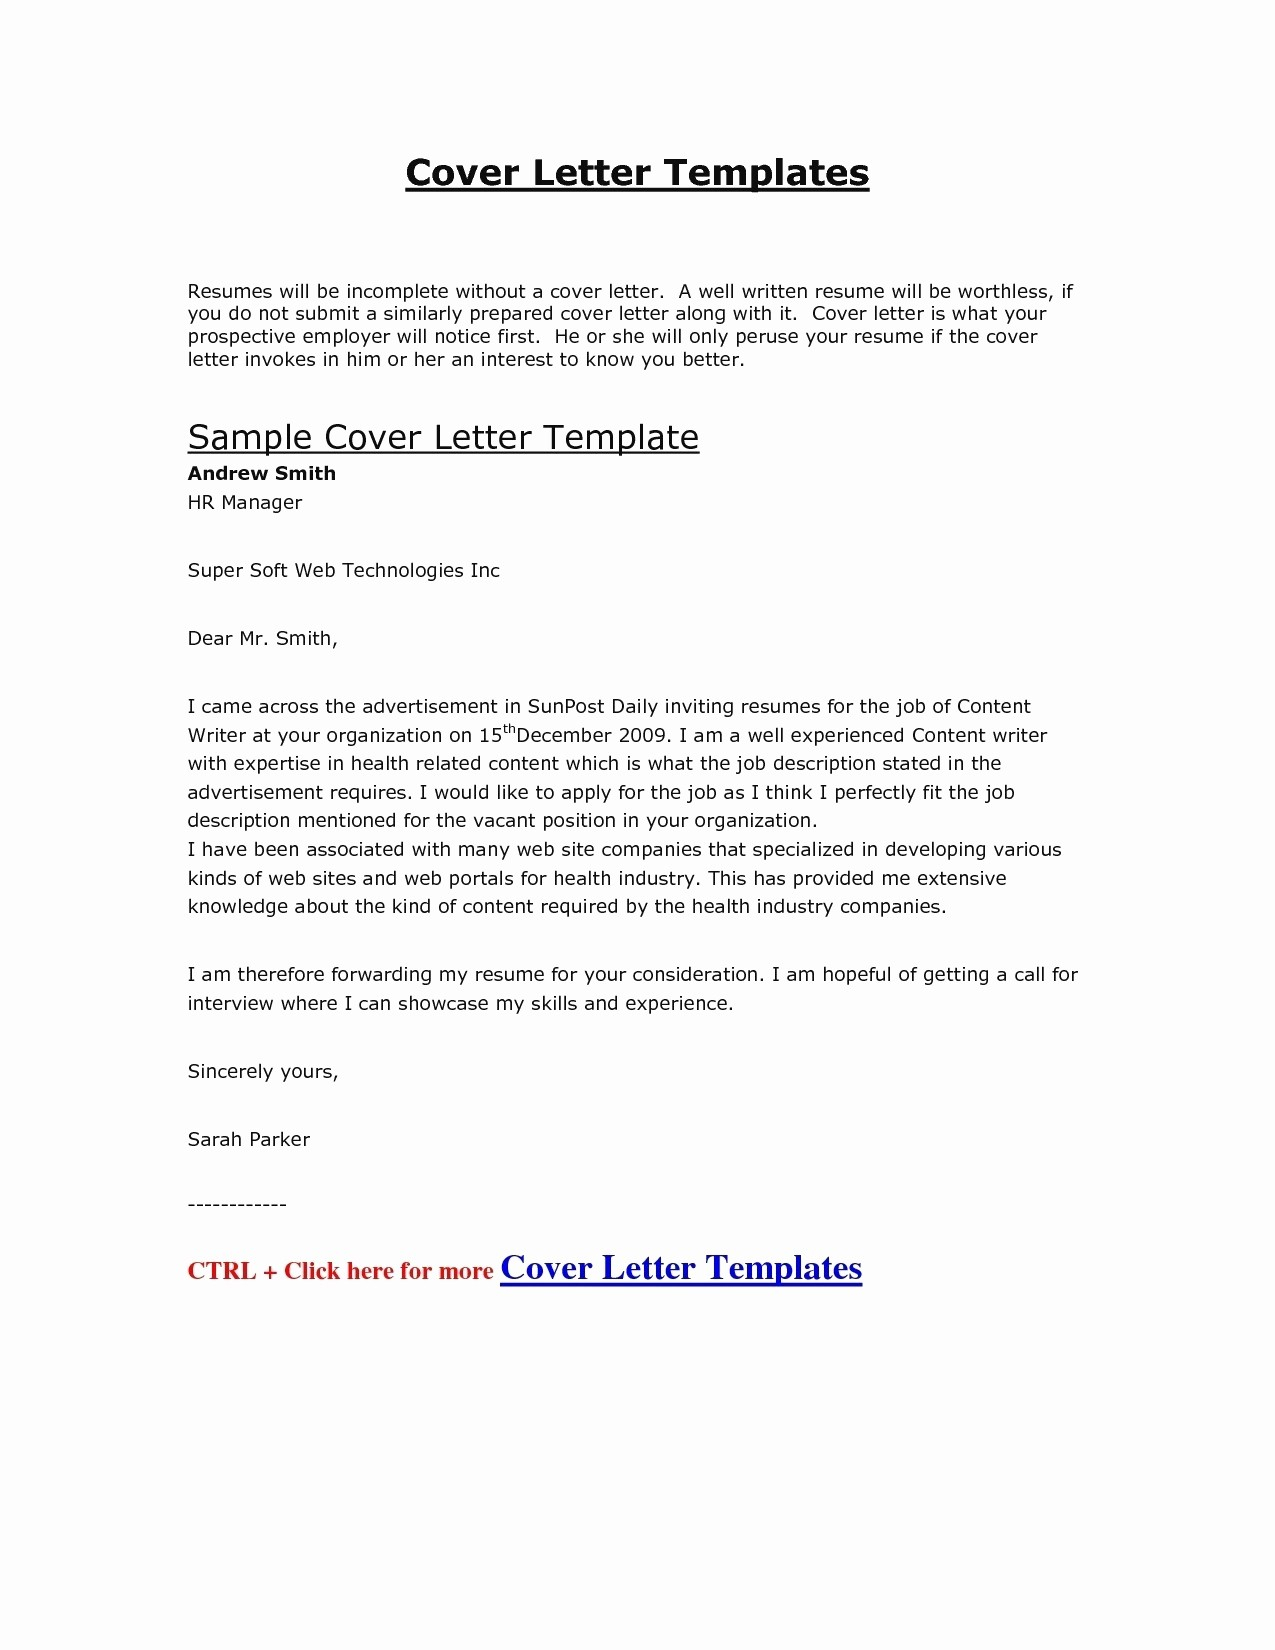 Cover Letter Template Word Job Application - Good Cover Letter Template New Job Application Letter format